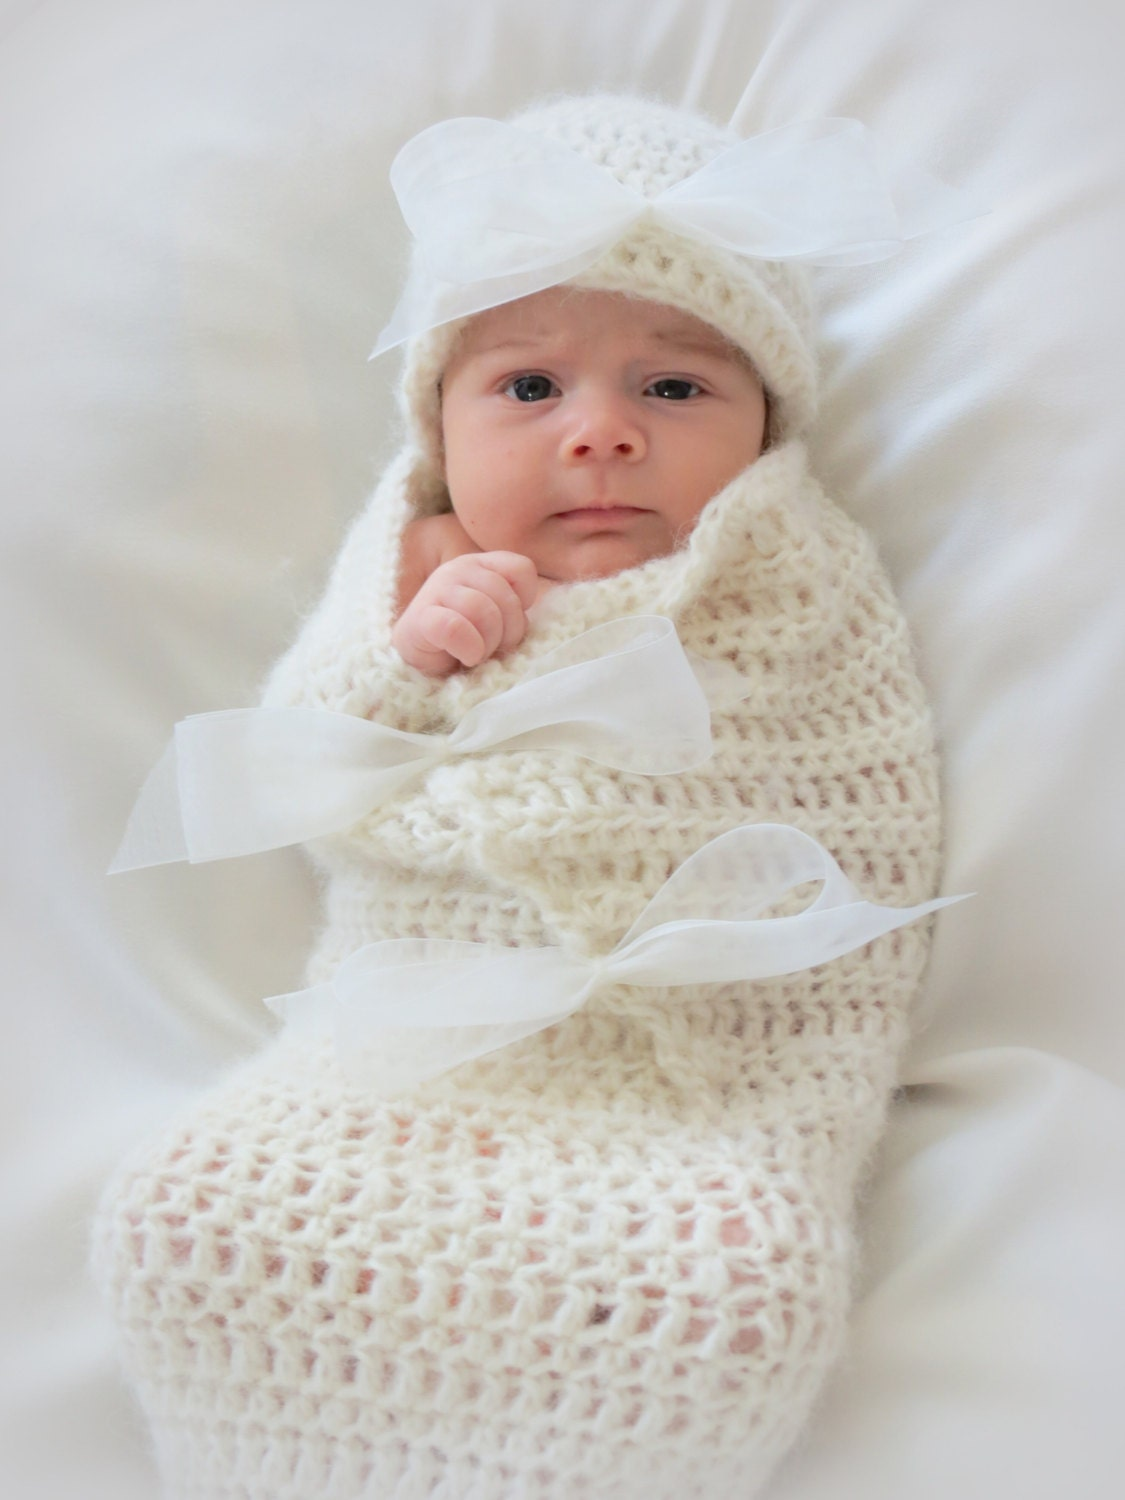 Easy Crochet Baby Cocoon Pattern : Crochet Baby Cocoon and Hat Pattern Newborn Photo Prop